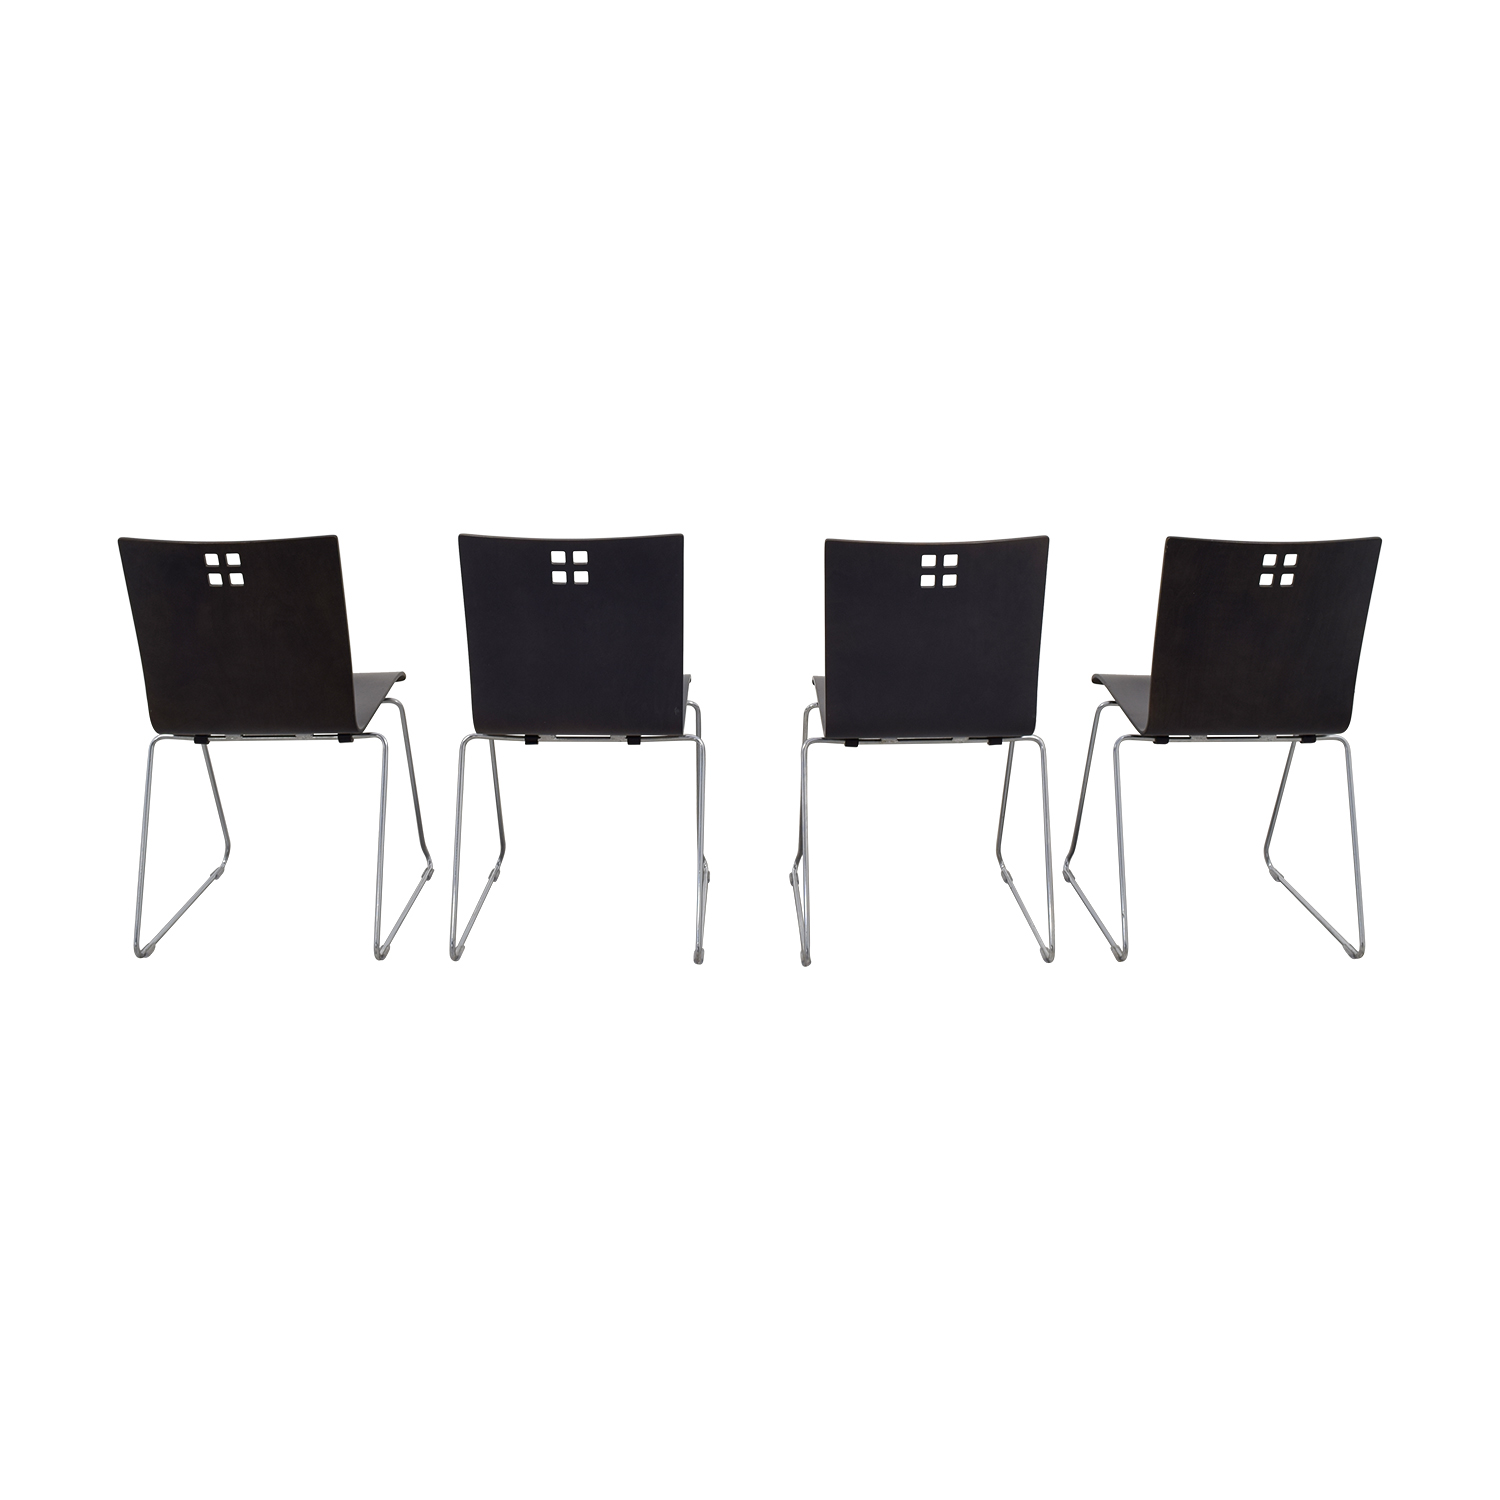 buy Leland International Marquette Dining Chairs - Set of 4 Leland International Chairs